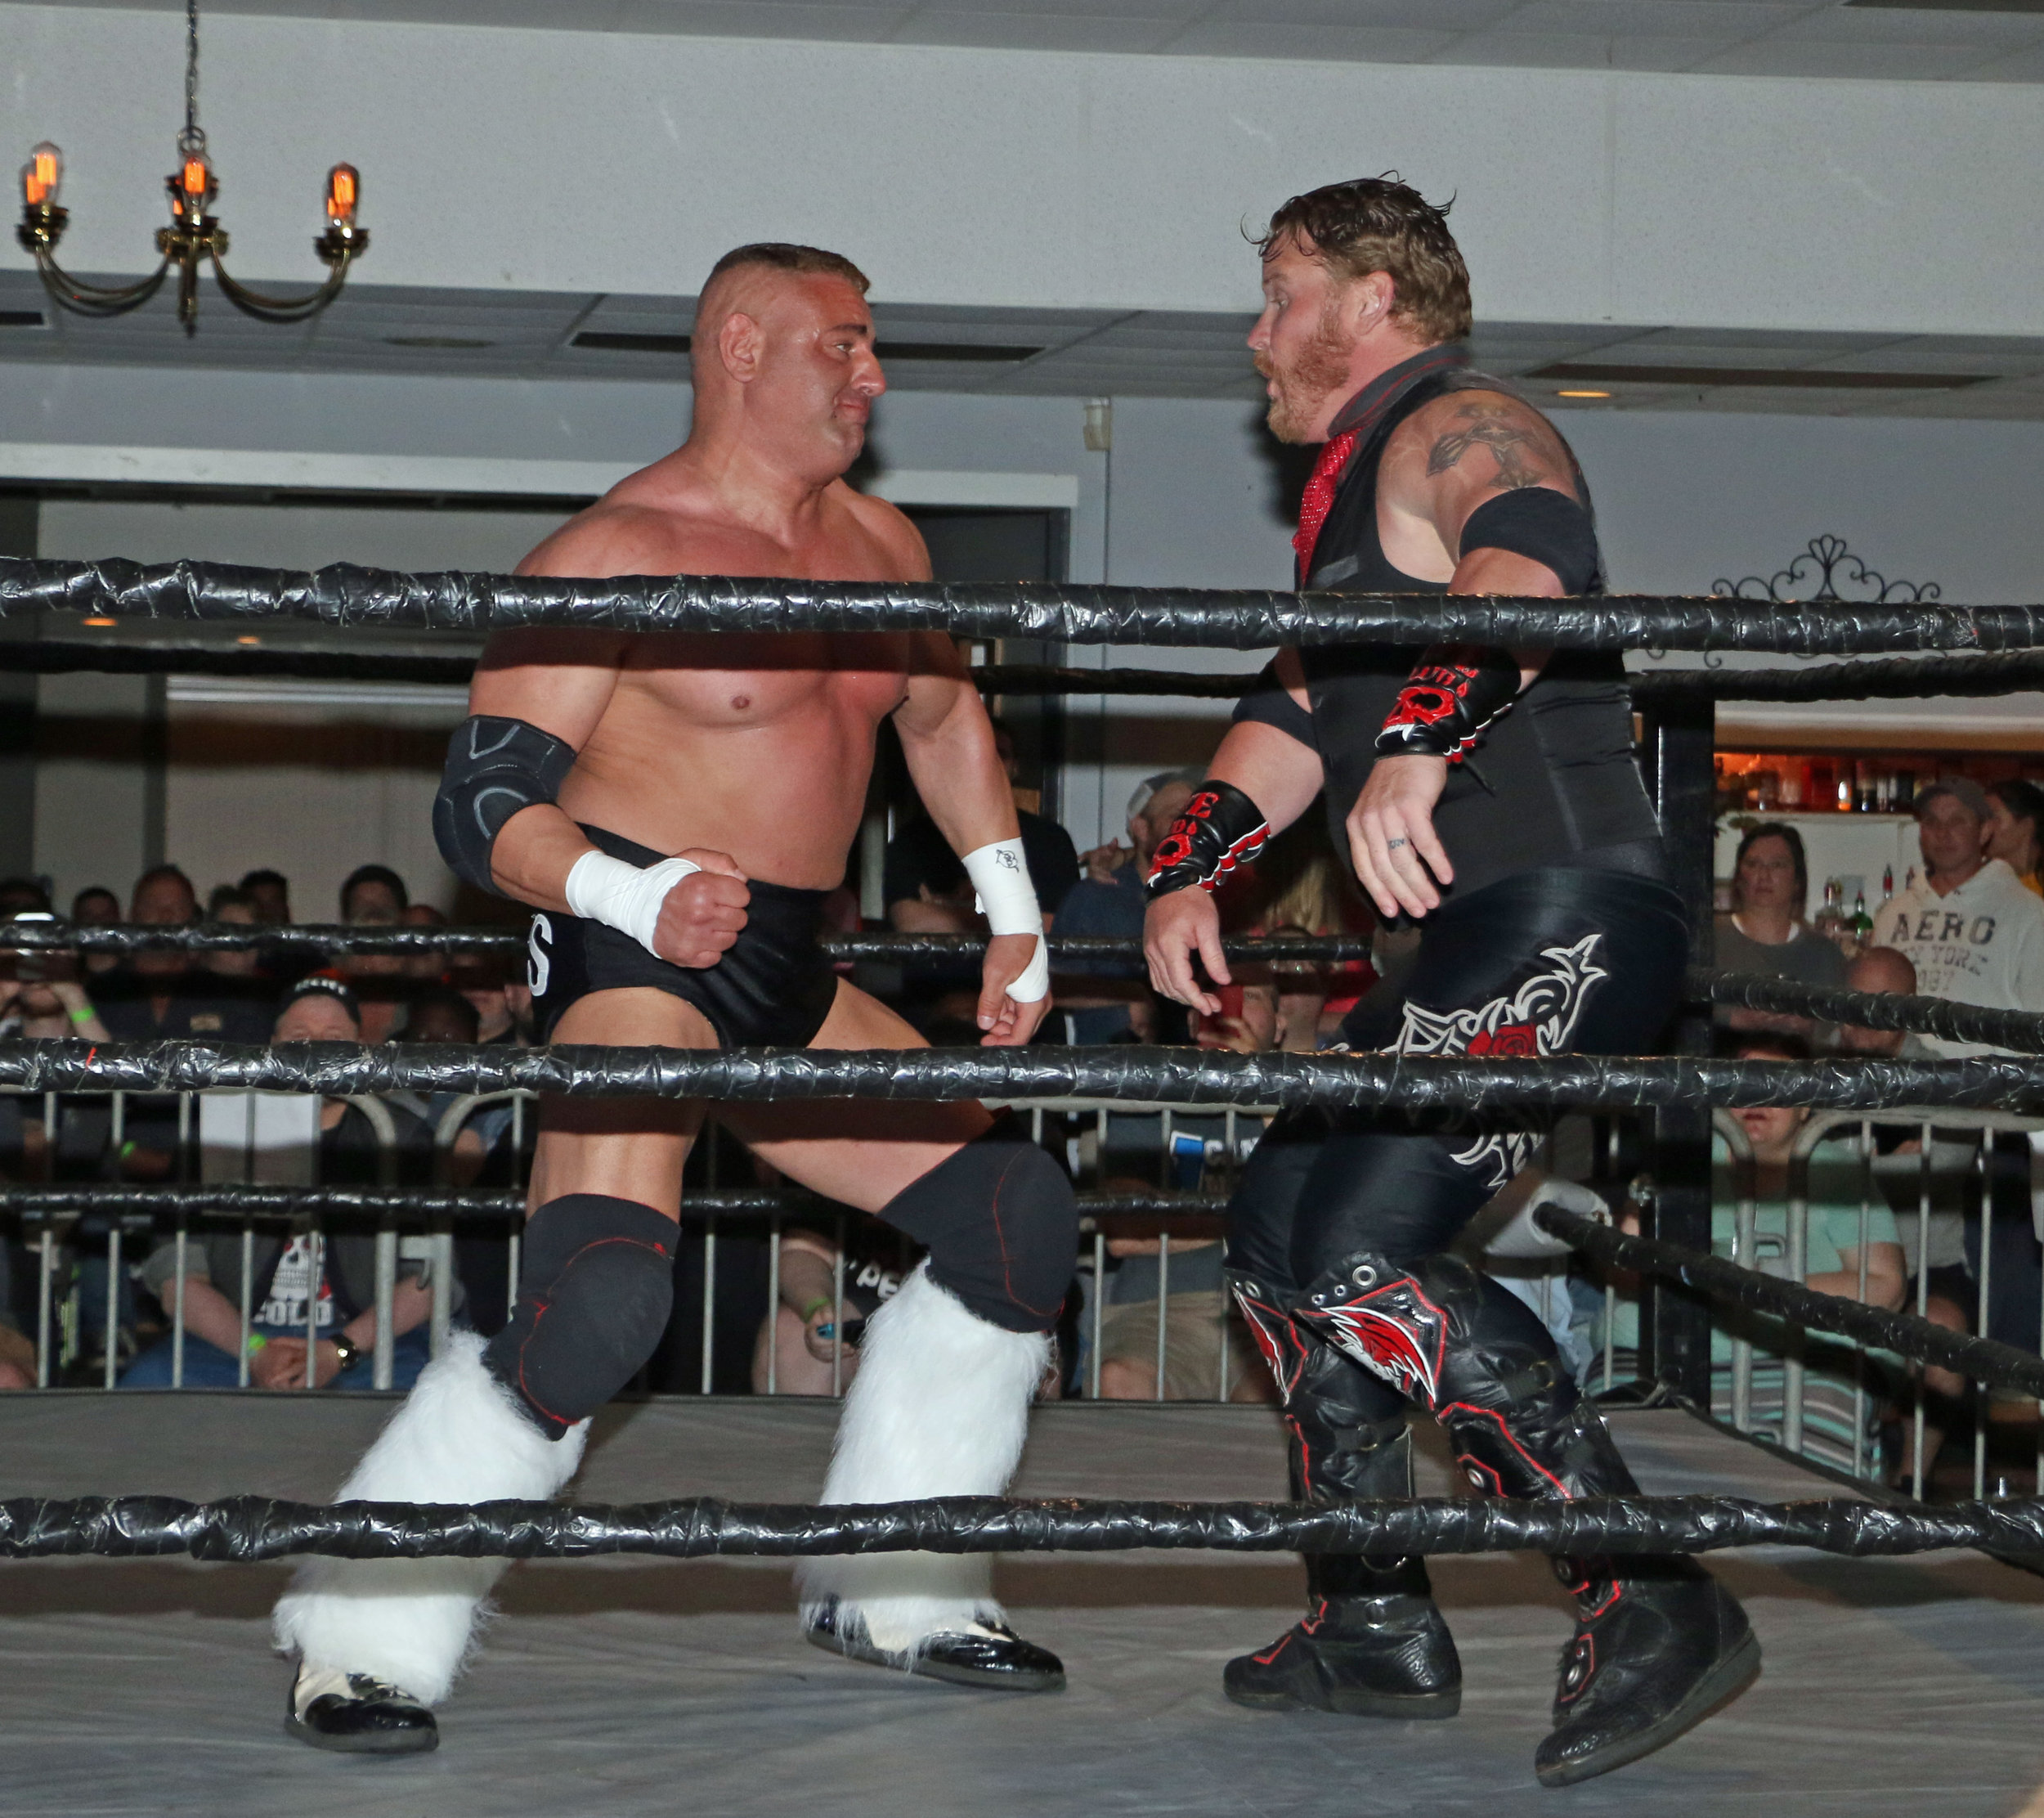 Ryan Kross exchanges blows with Kevin Thorn during the main event tag team match.